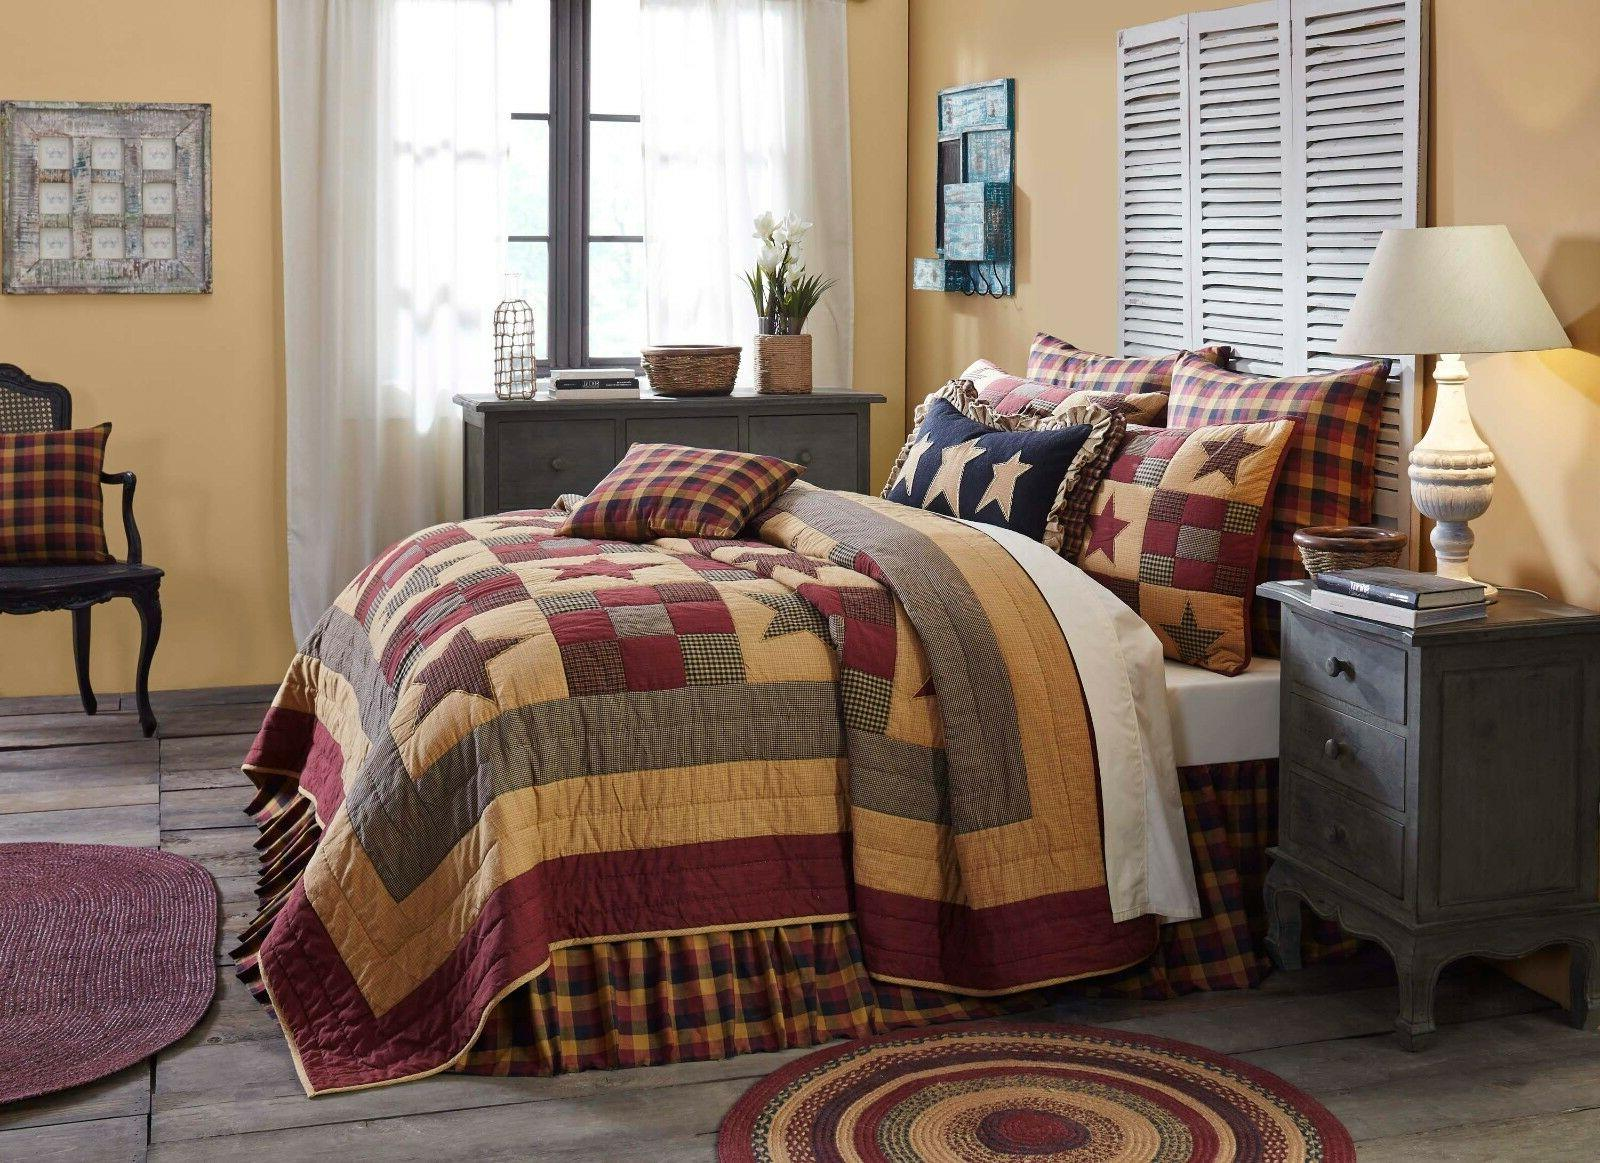 HAZELWOOD 3pc Luxury Quilt Ninepatch Star Check Farmhouse